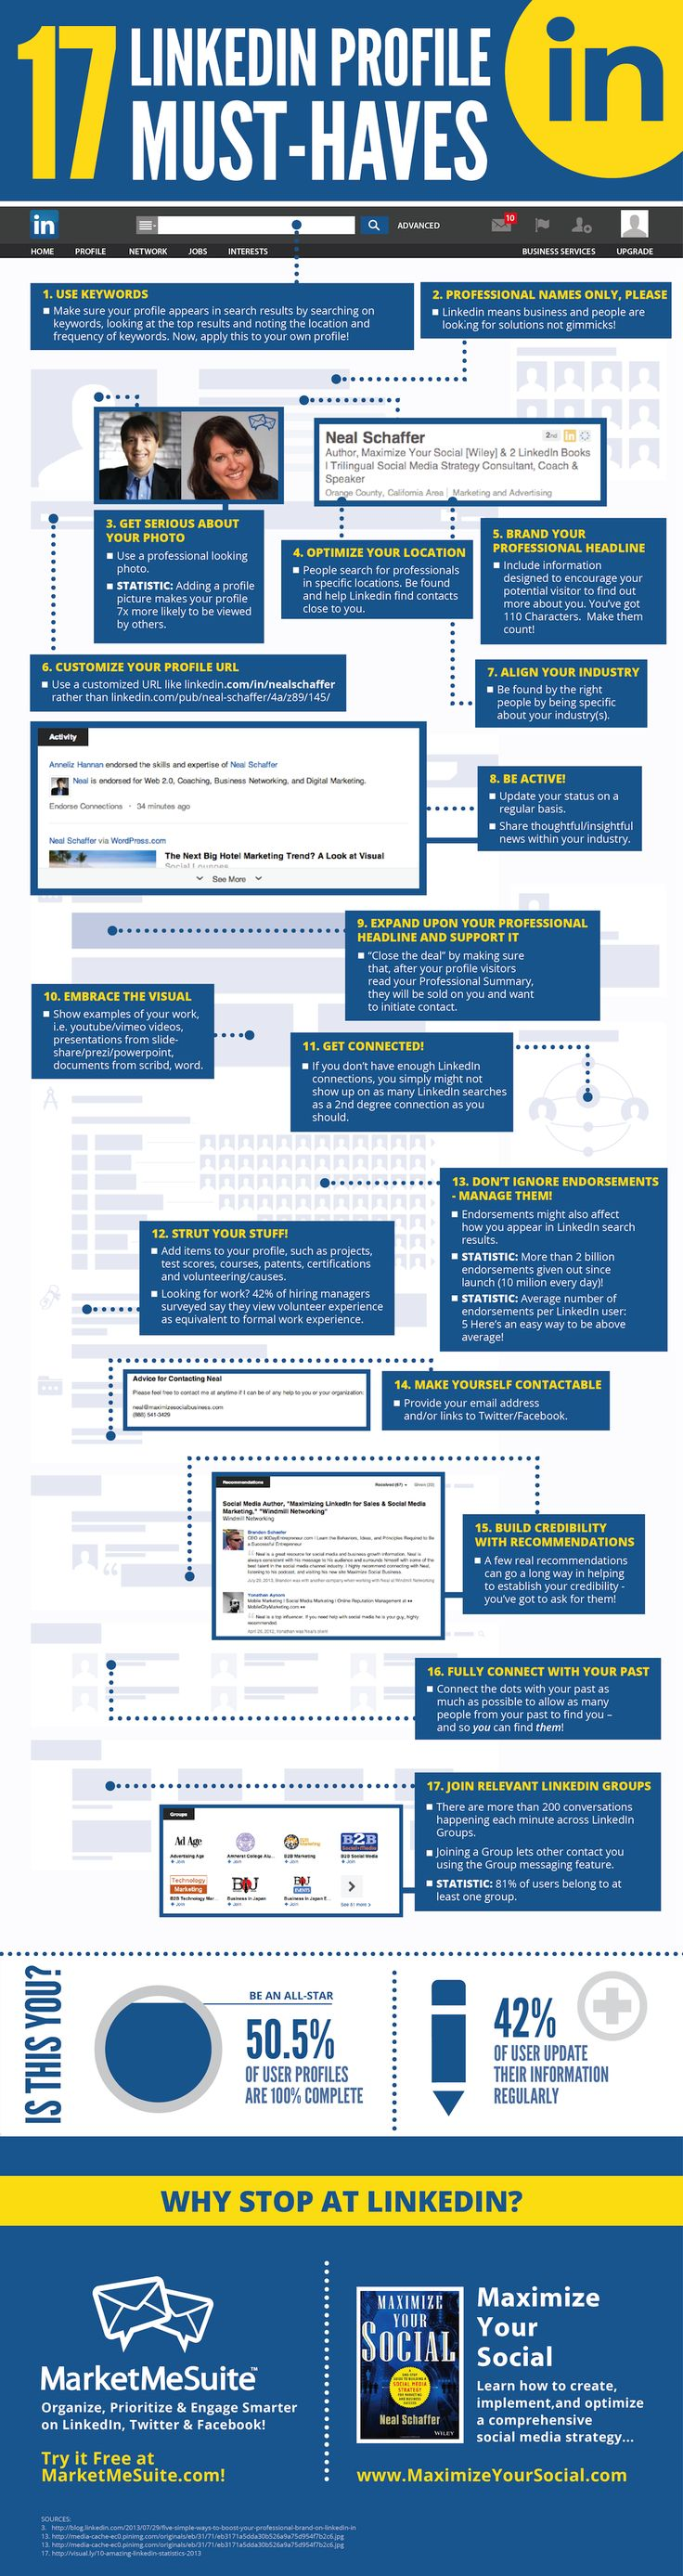 17 Must Haves LinkedIn Perfect Profile Tips Summary [Infographic]